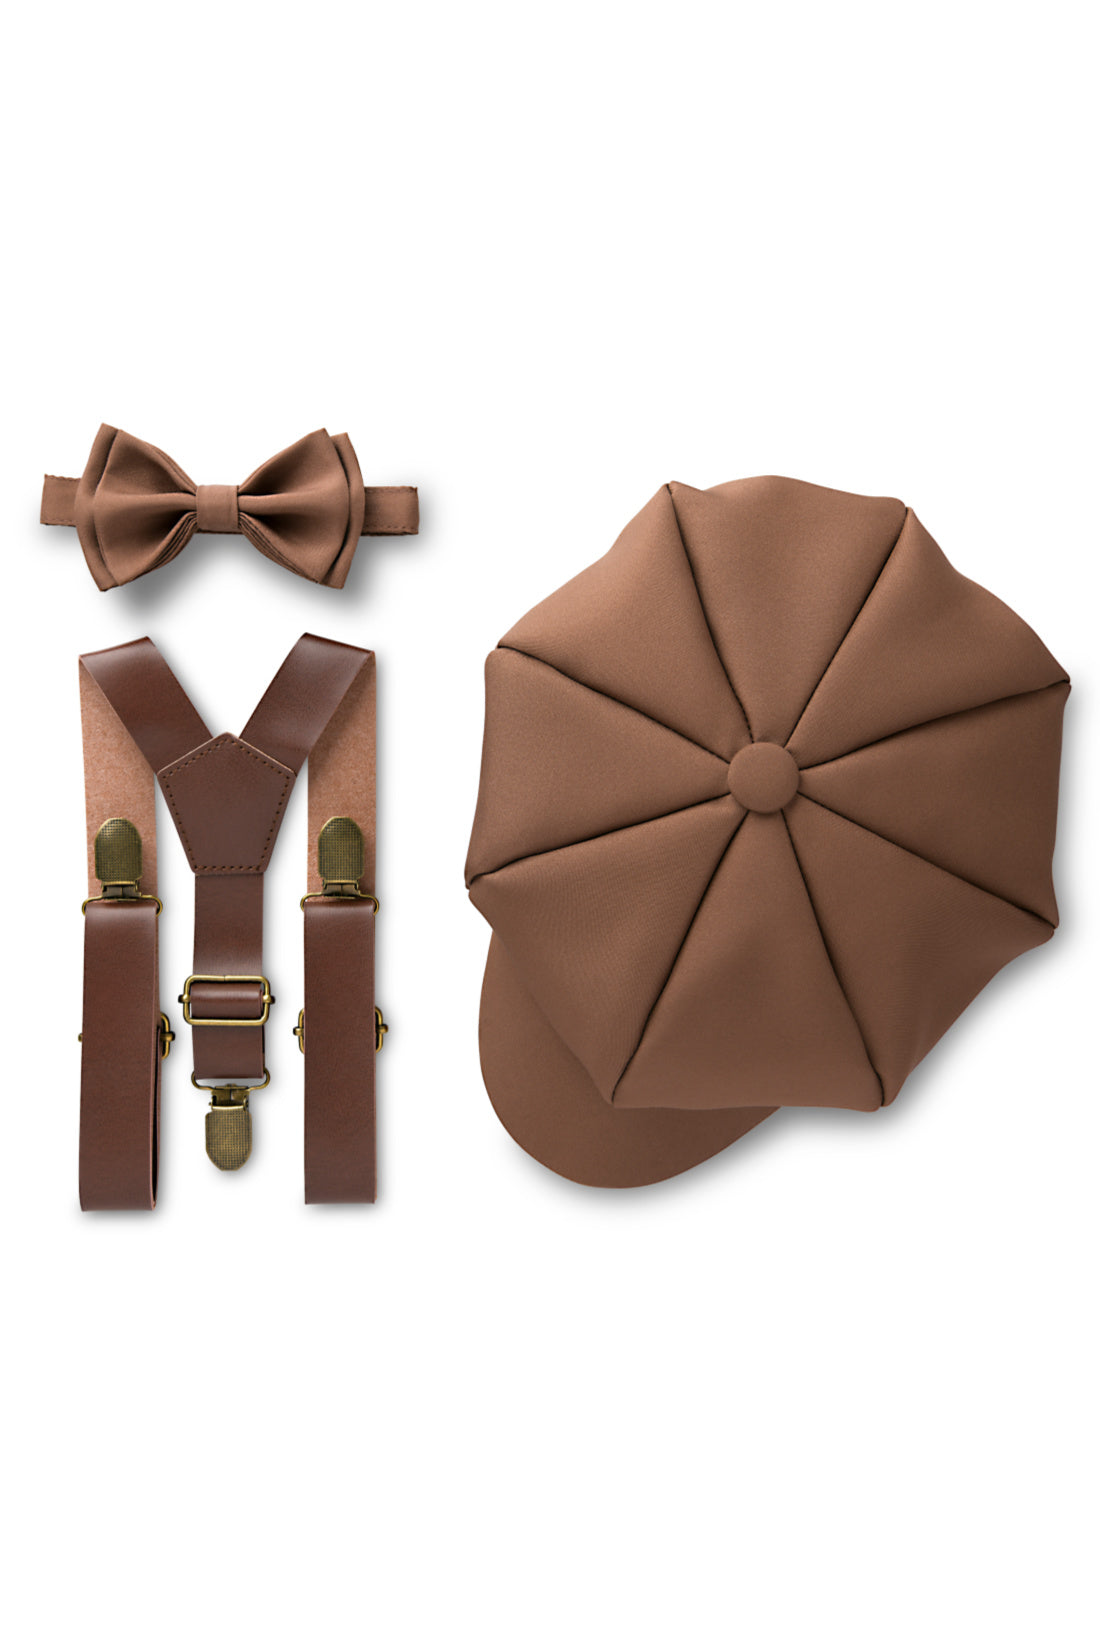 Medium Brown Ring Bearer Outfit